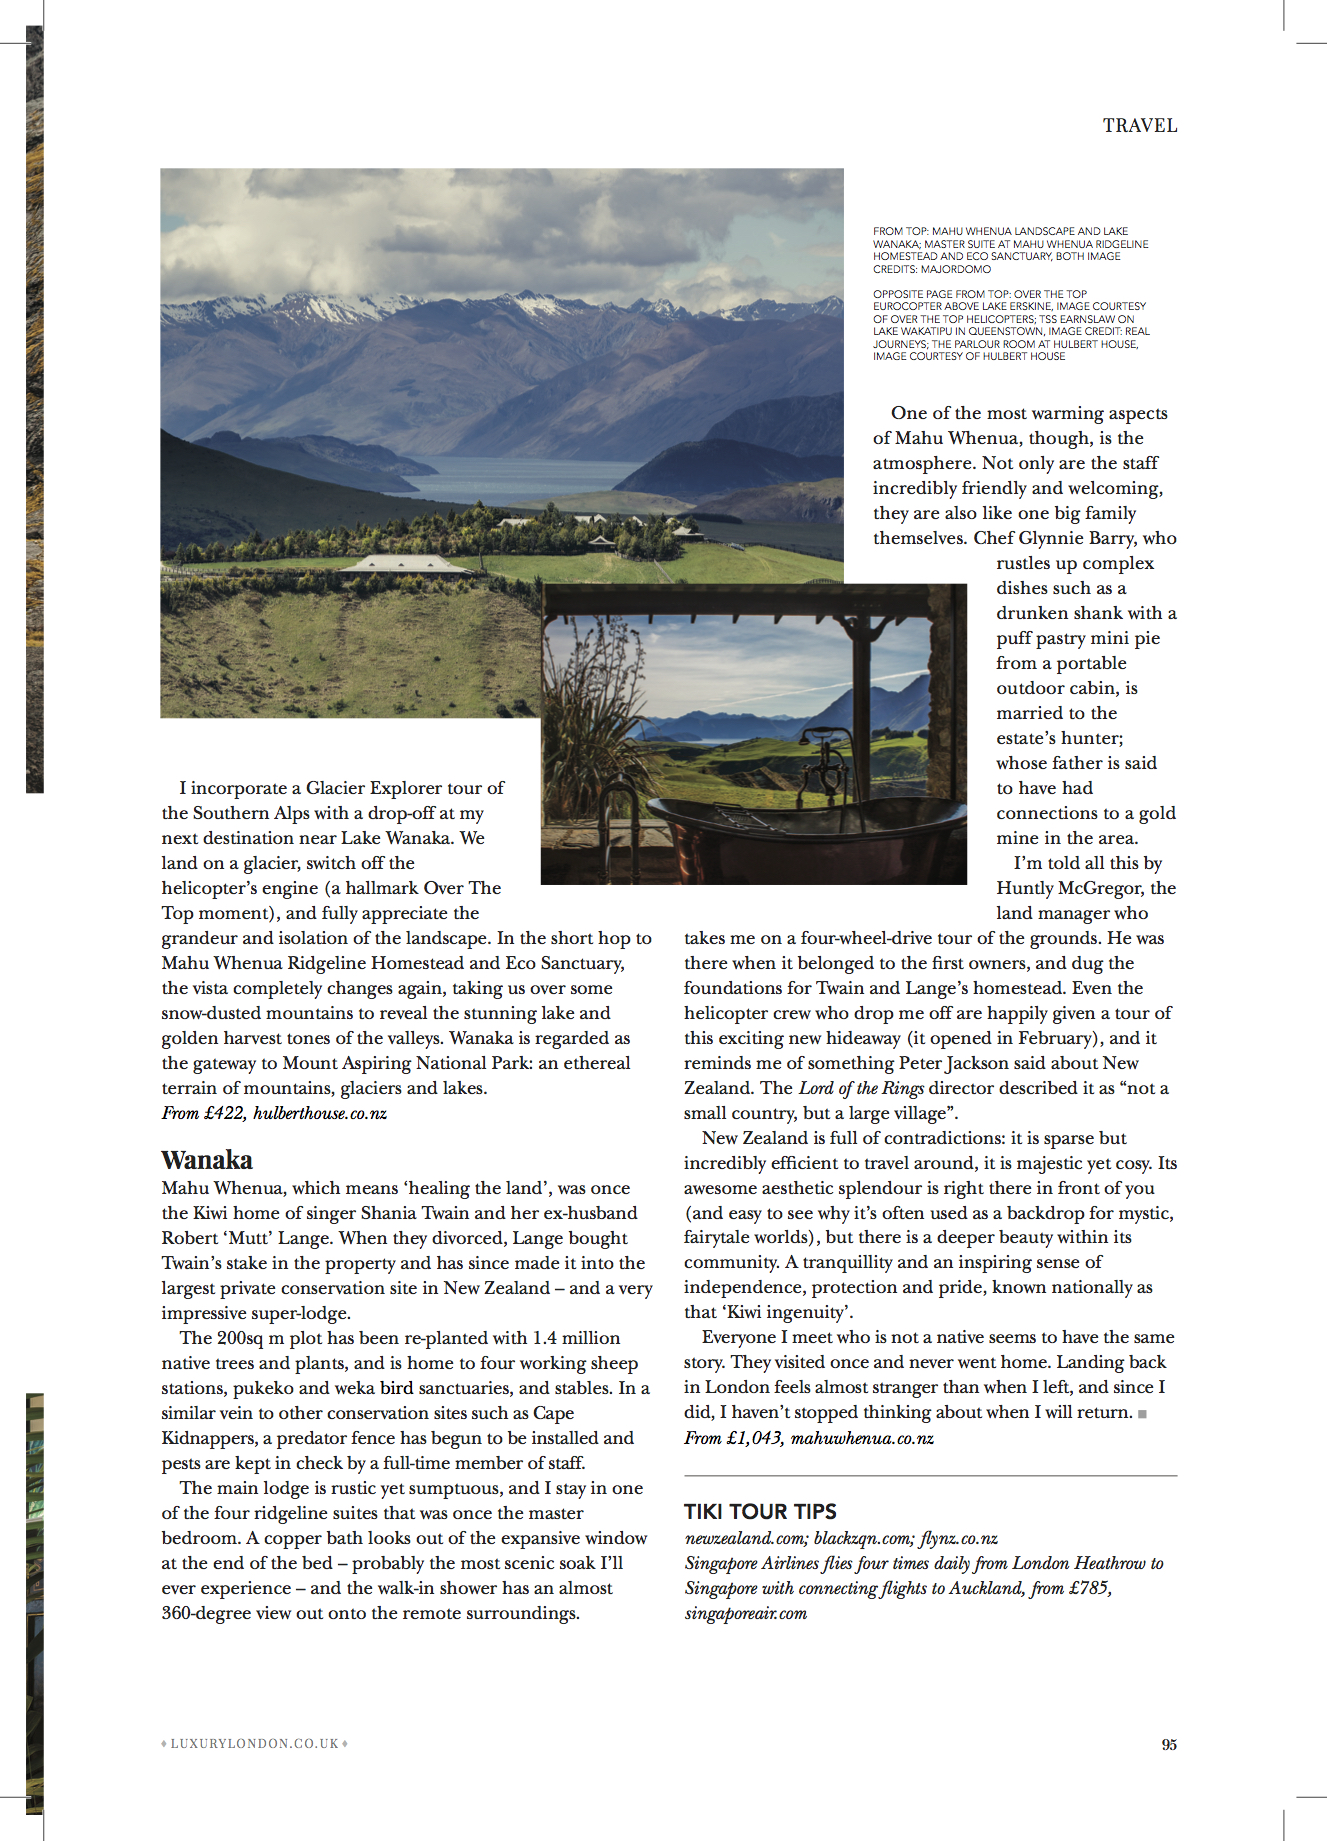 095 MAYF AUG 17 - TRAVEL - FEATURE - NEW ZEALAND.jpg